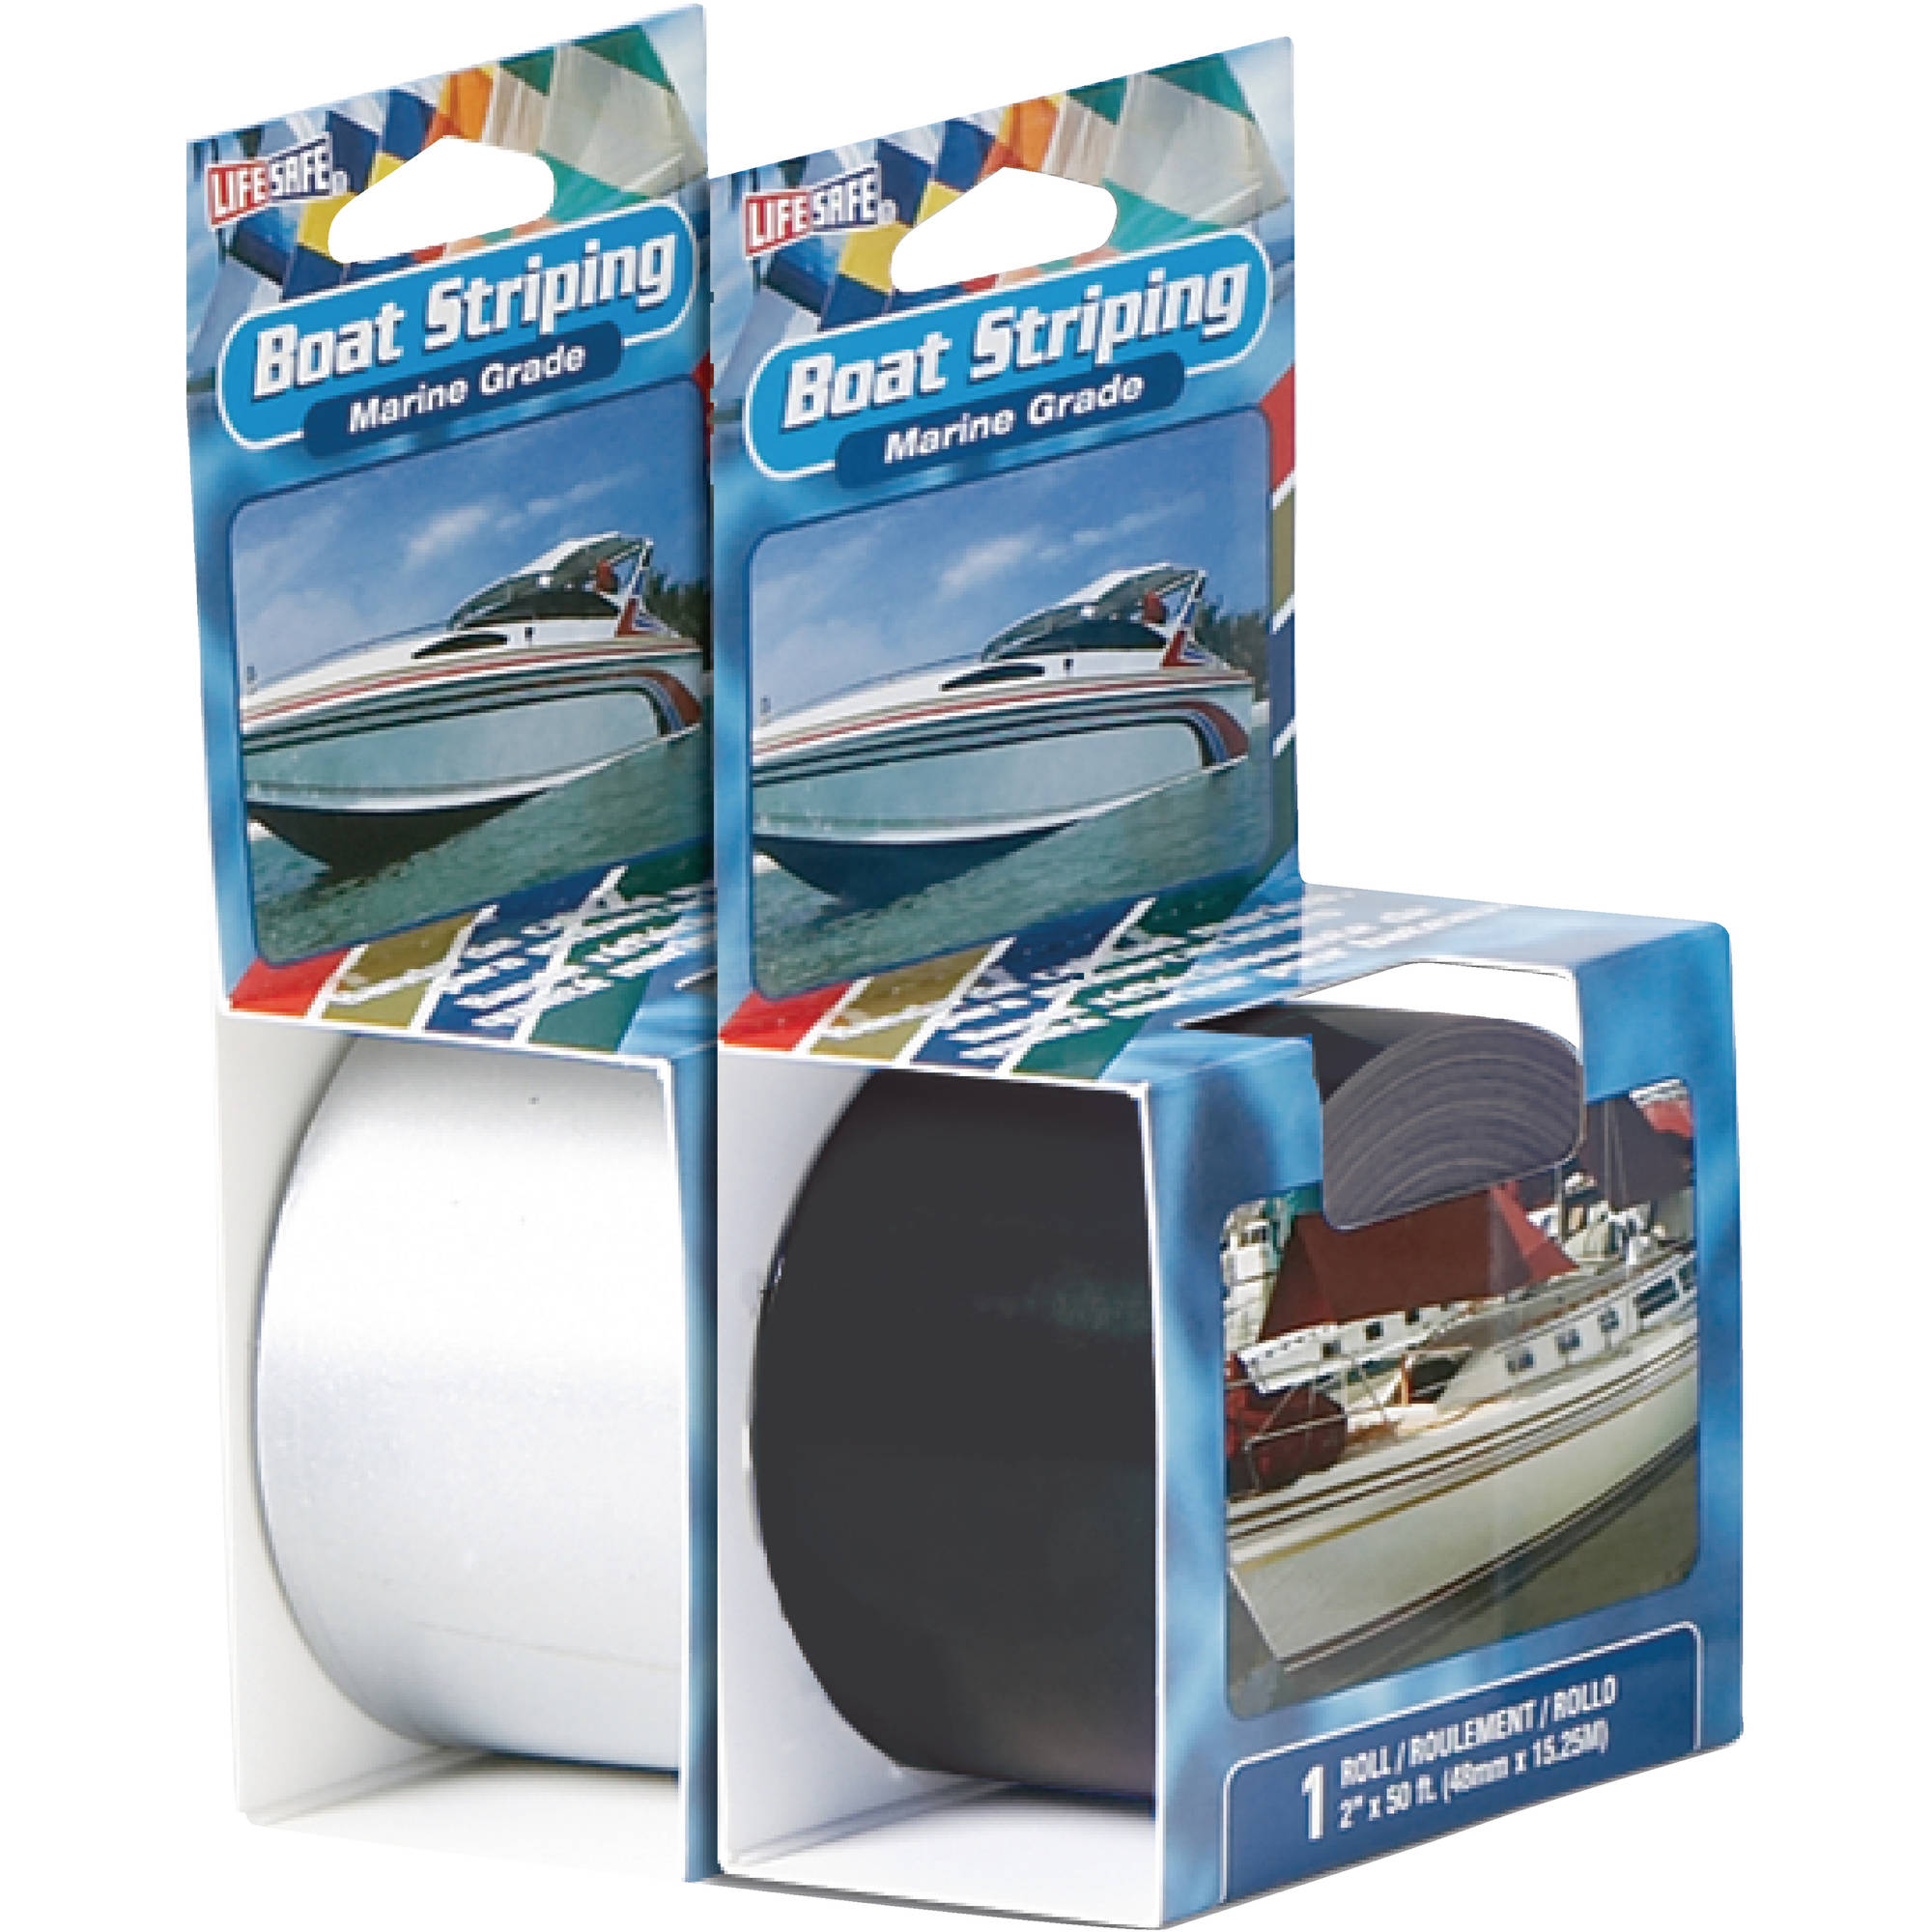 Life Safe Marine Grade Boat Striping Tape, 50'